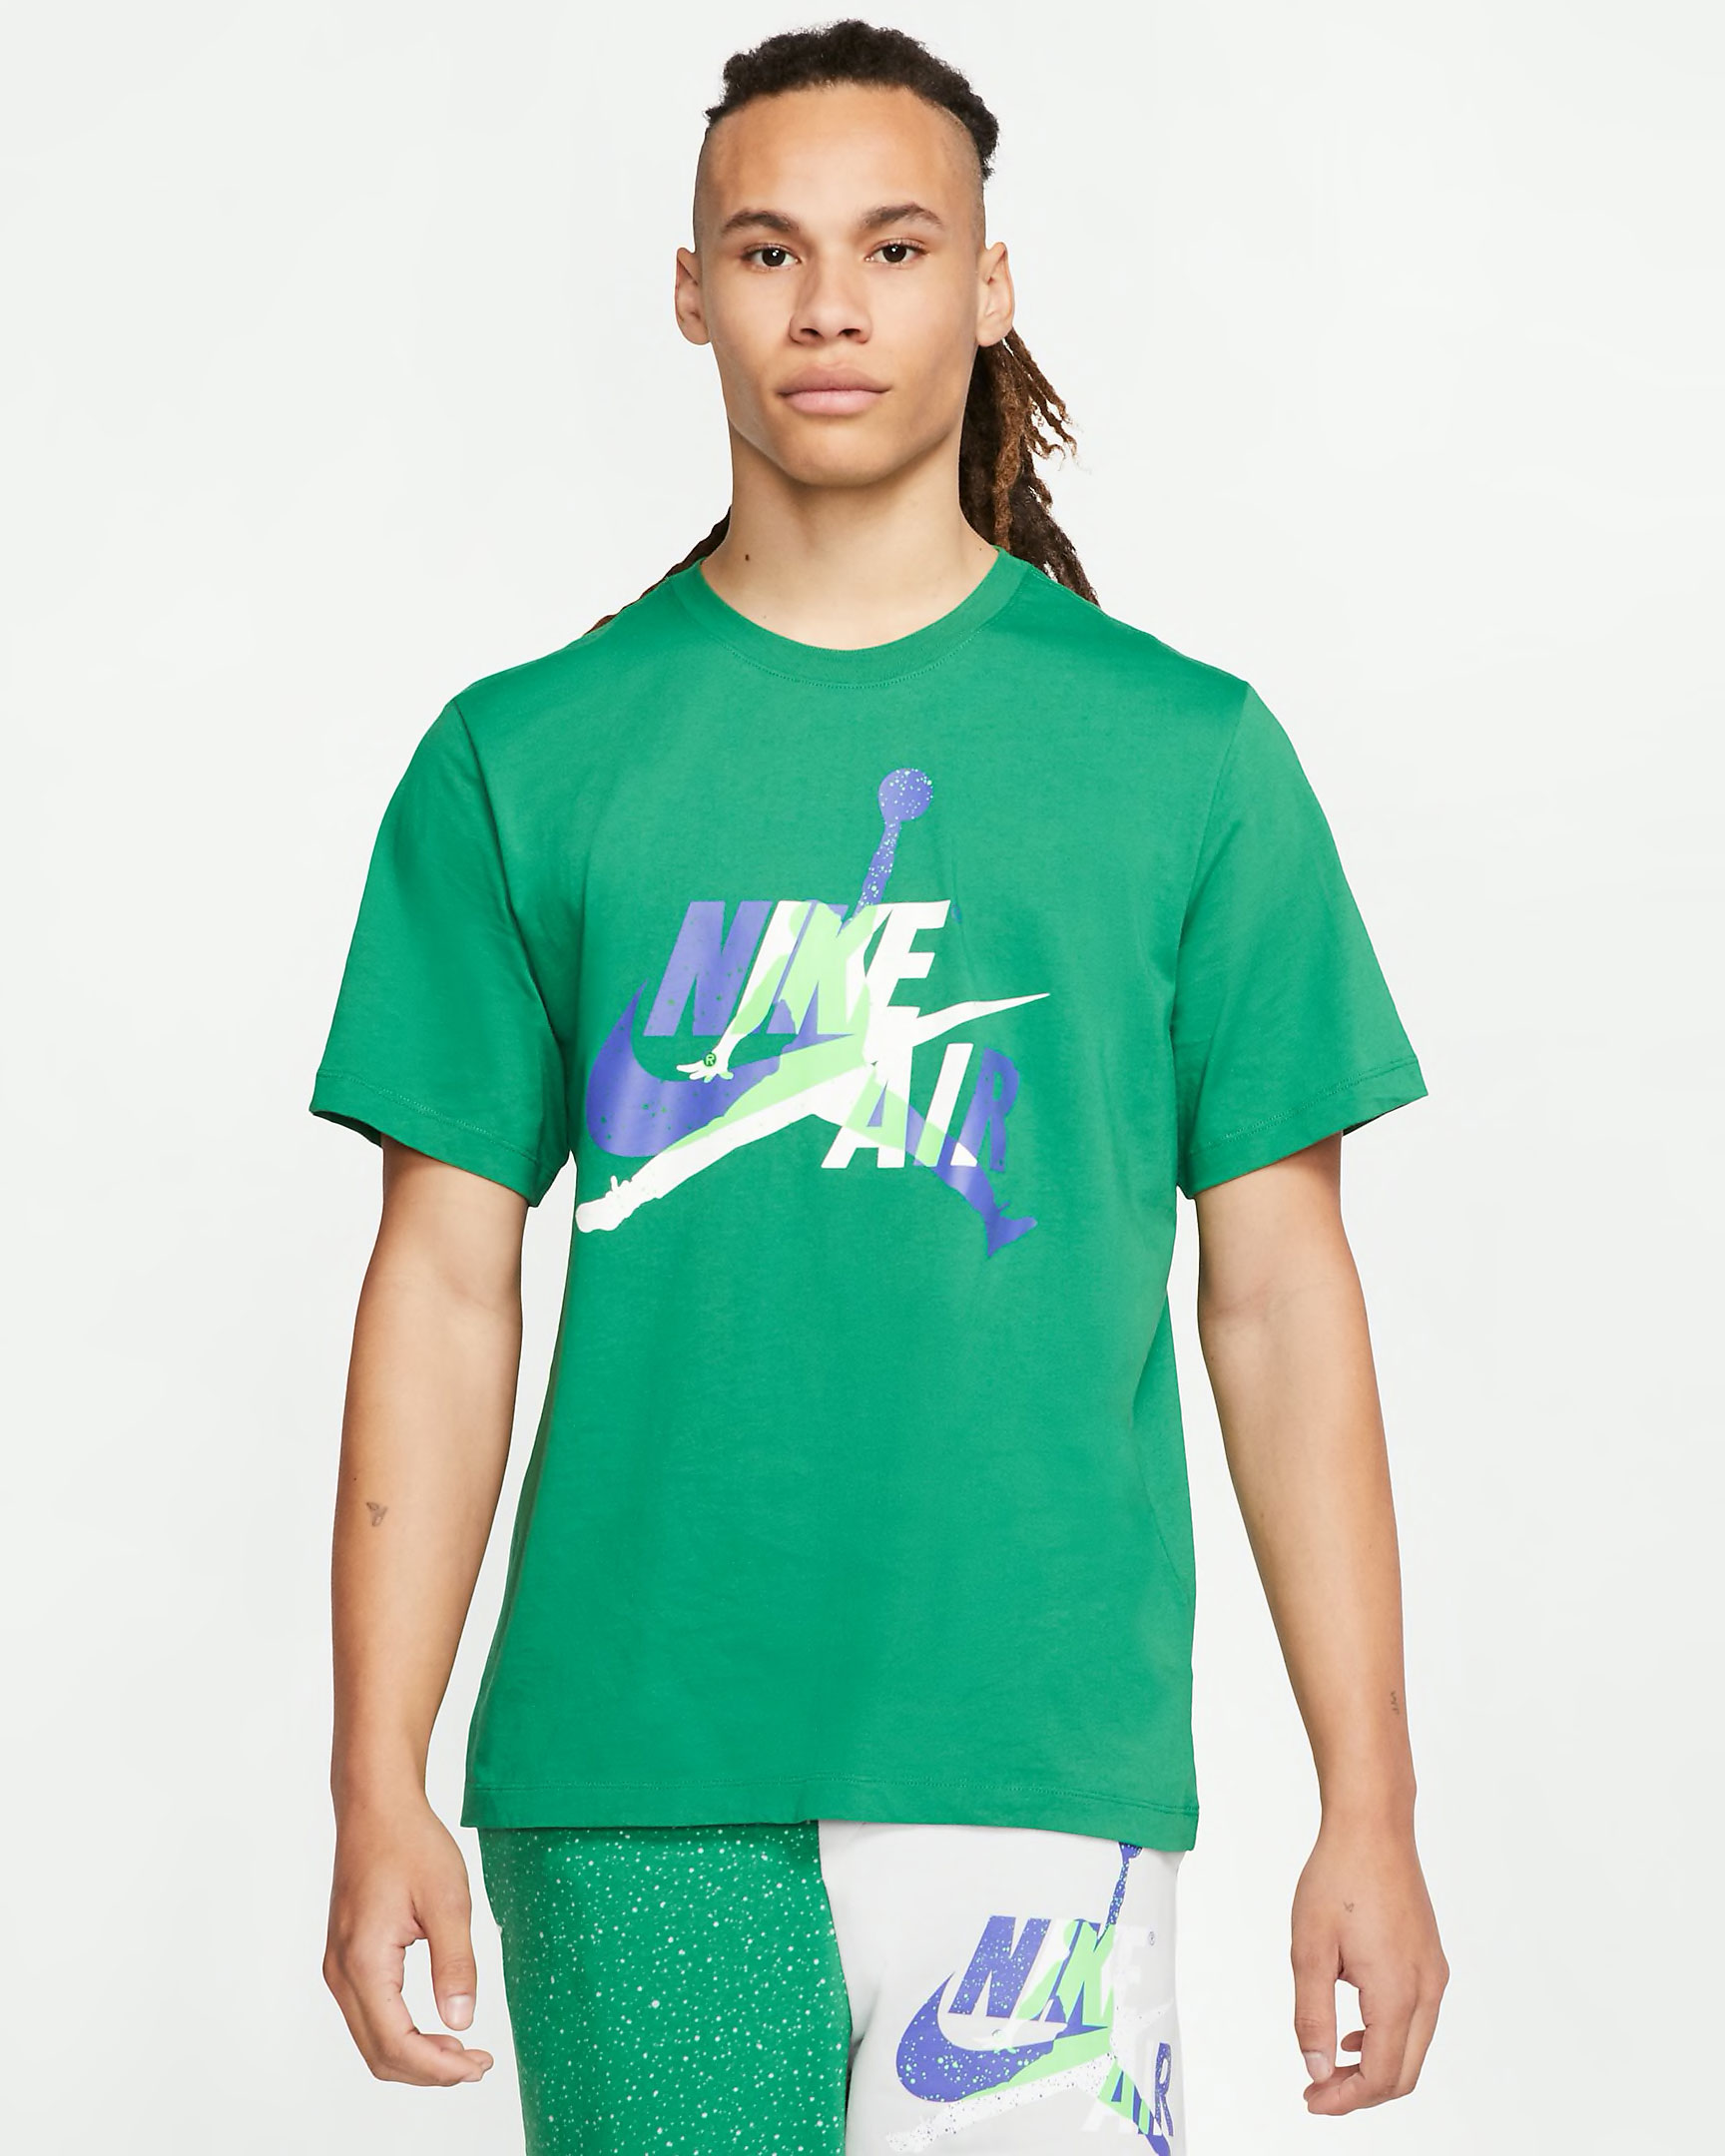 air-jordan-1-mid-hulk-shirt